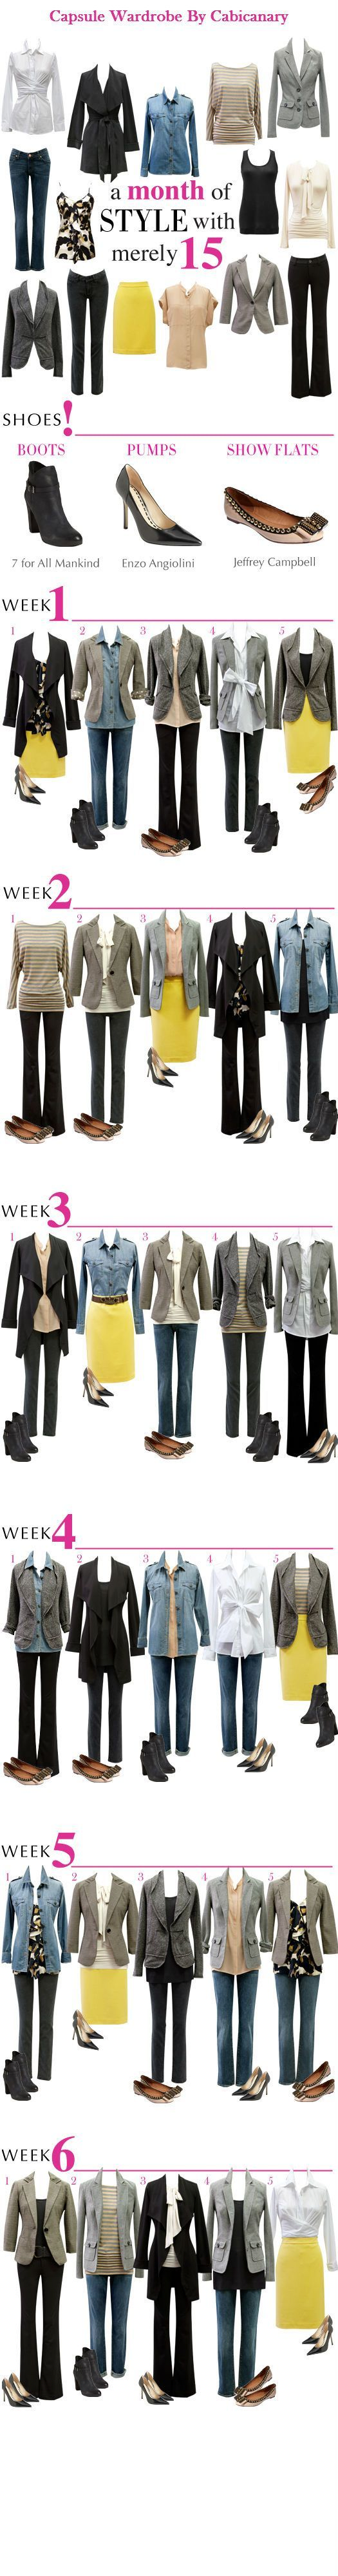 30 Days of Style from 15 Pieces. Great little ideas here. Americans must start investing in less pieces with more value.